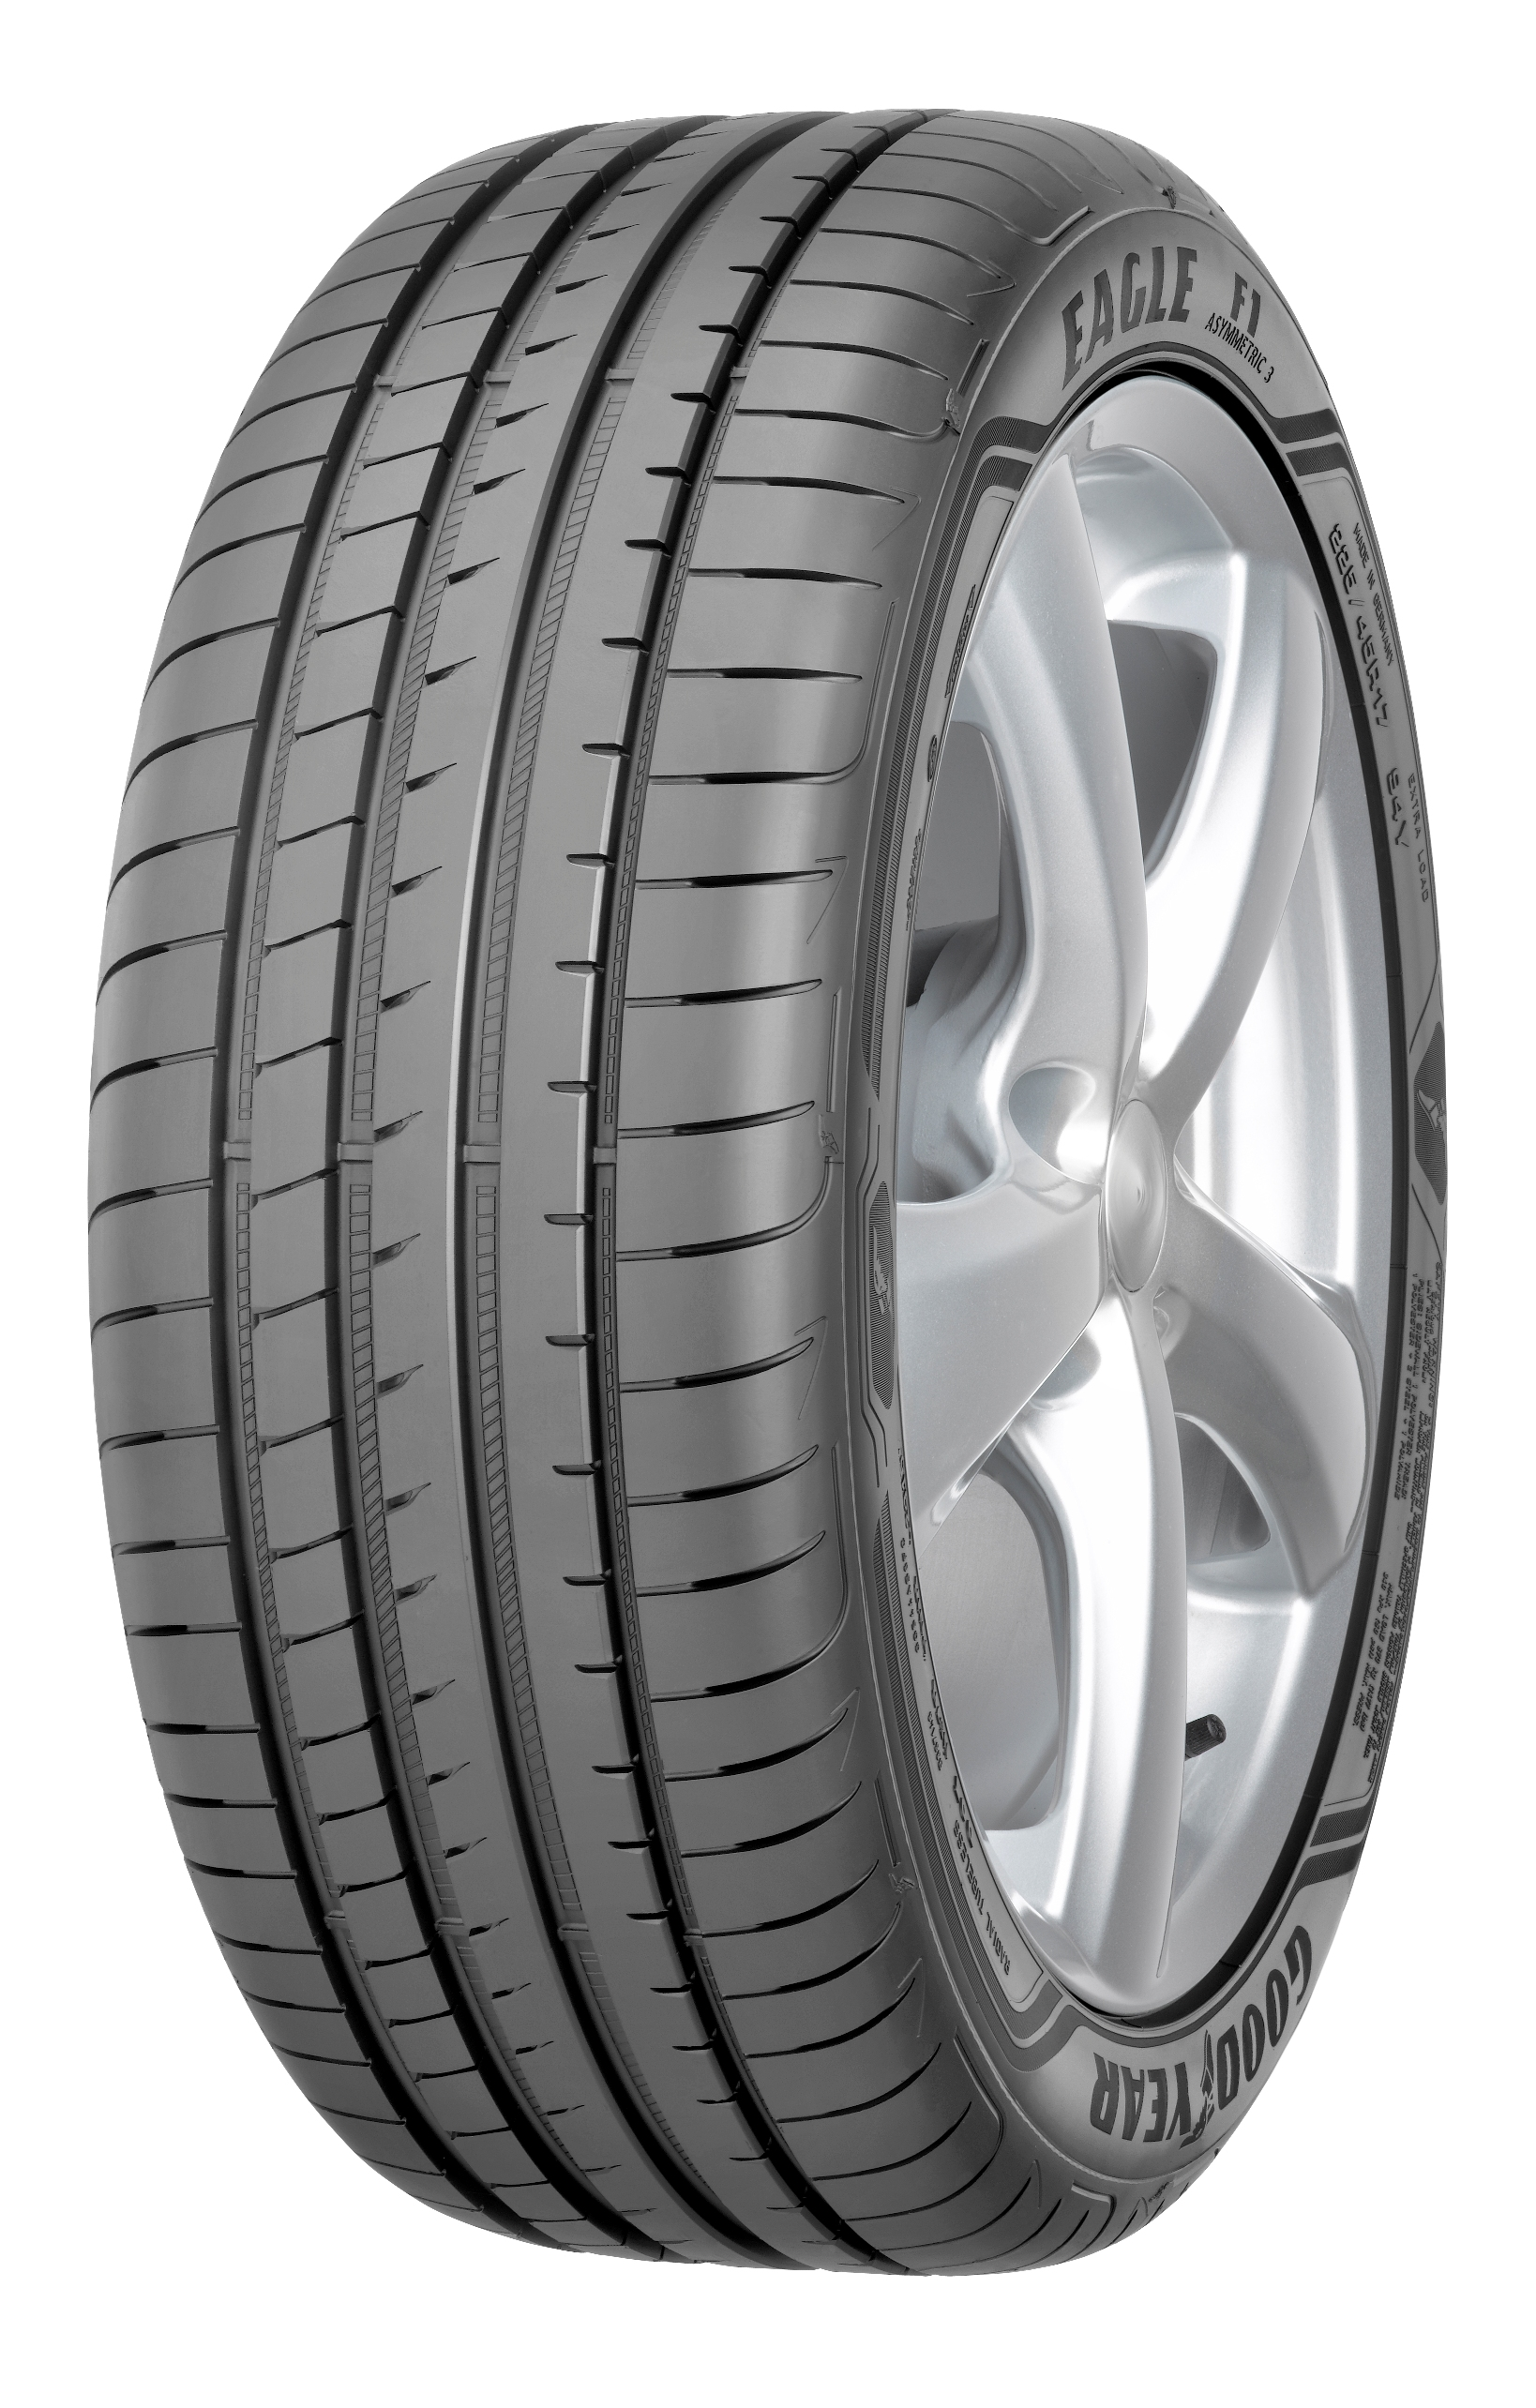 Anvelope Goodyear Eagle F1 Asymmetri 5 225/55R17 97Y Vara imagine